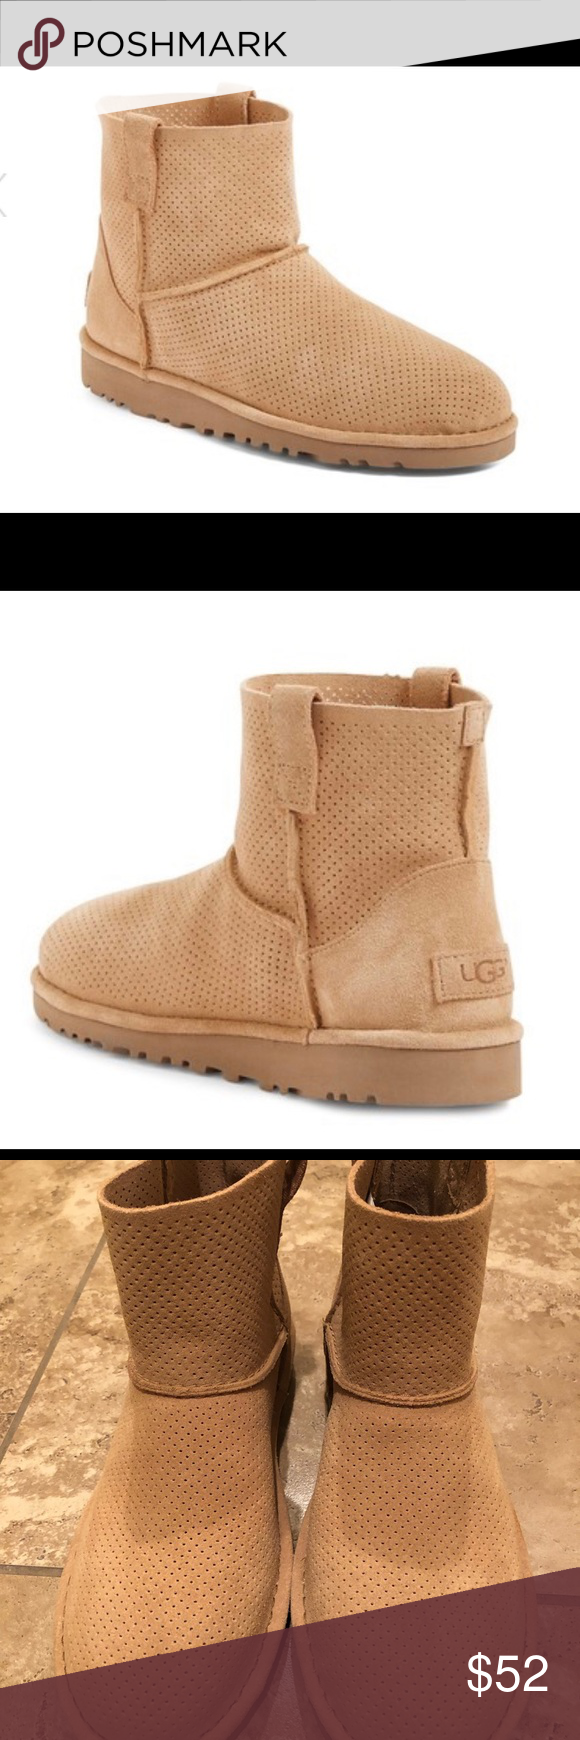 9566375d8c8 💕UGG CLASSIC UNLINED MINI PERFORATED BOOTS!💕 New! Super cute Ugg ...